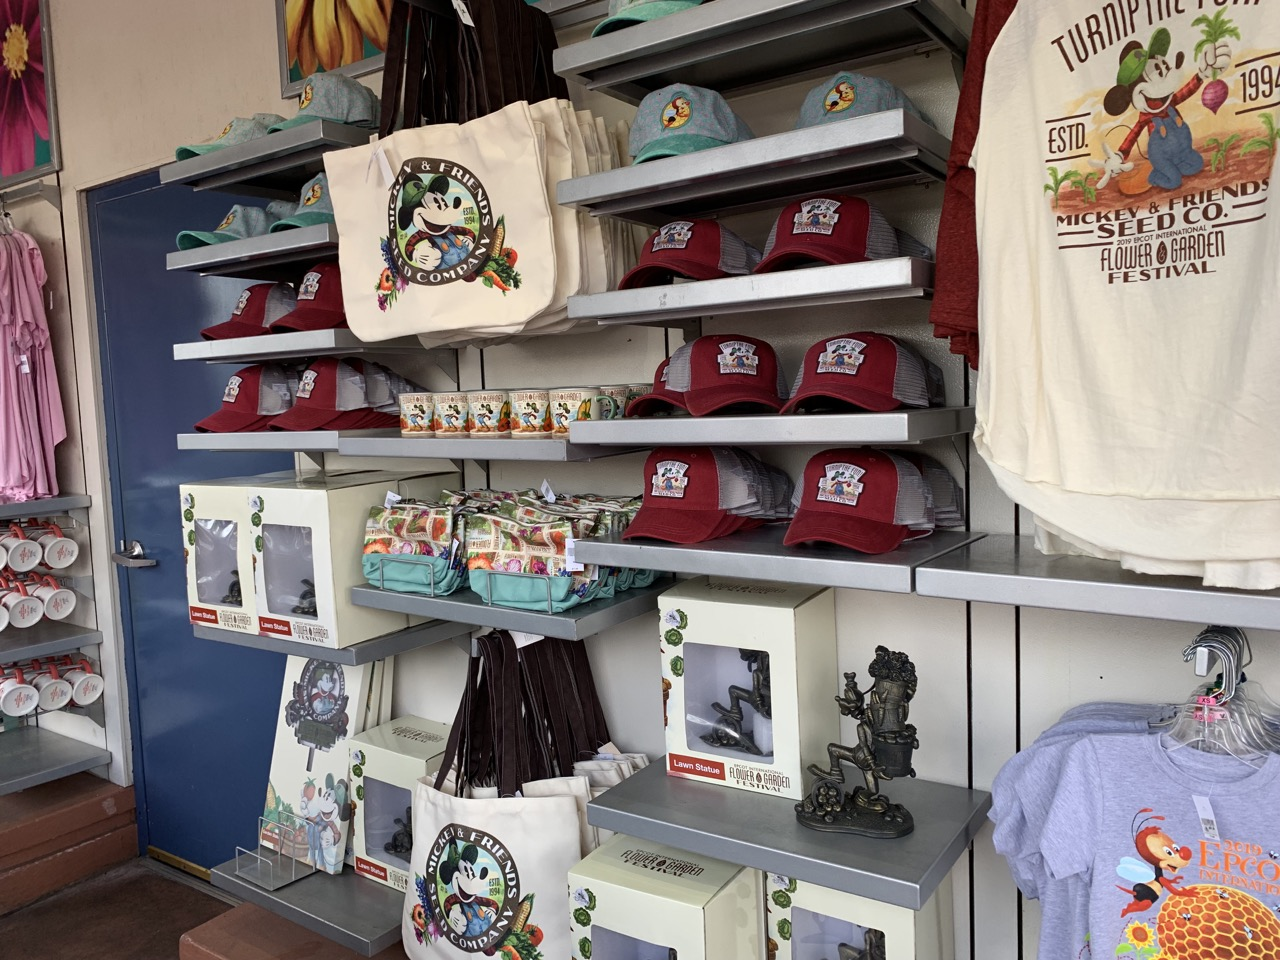 disney world trip report early summer 2019 day four 16 merchandise.jpeg